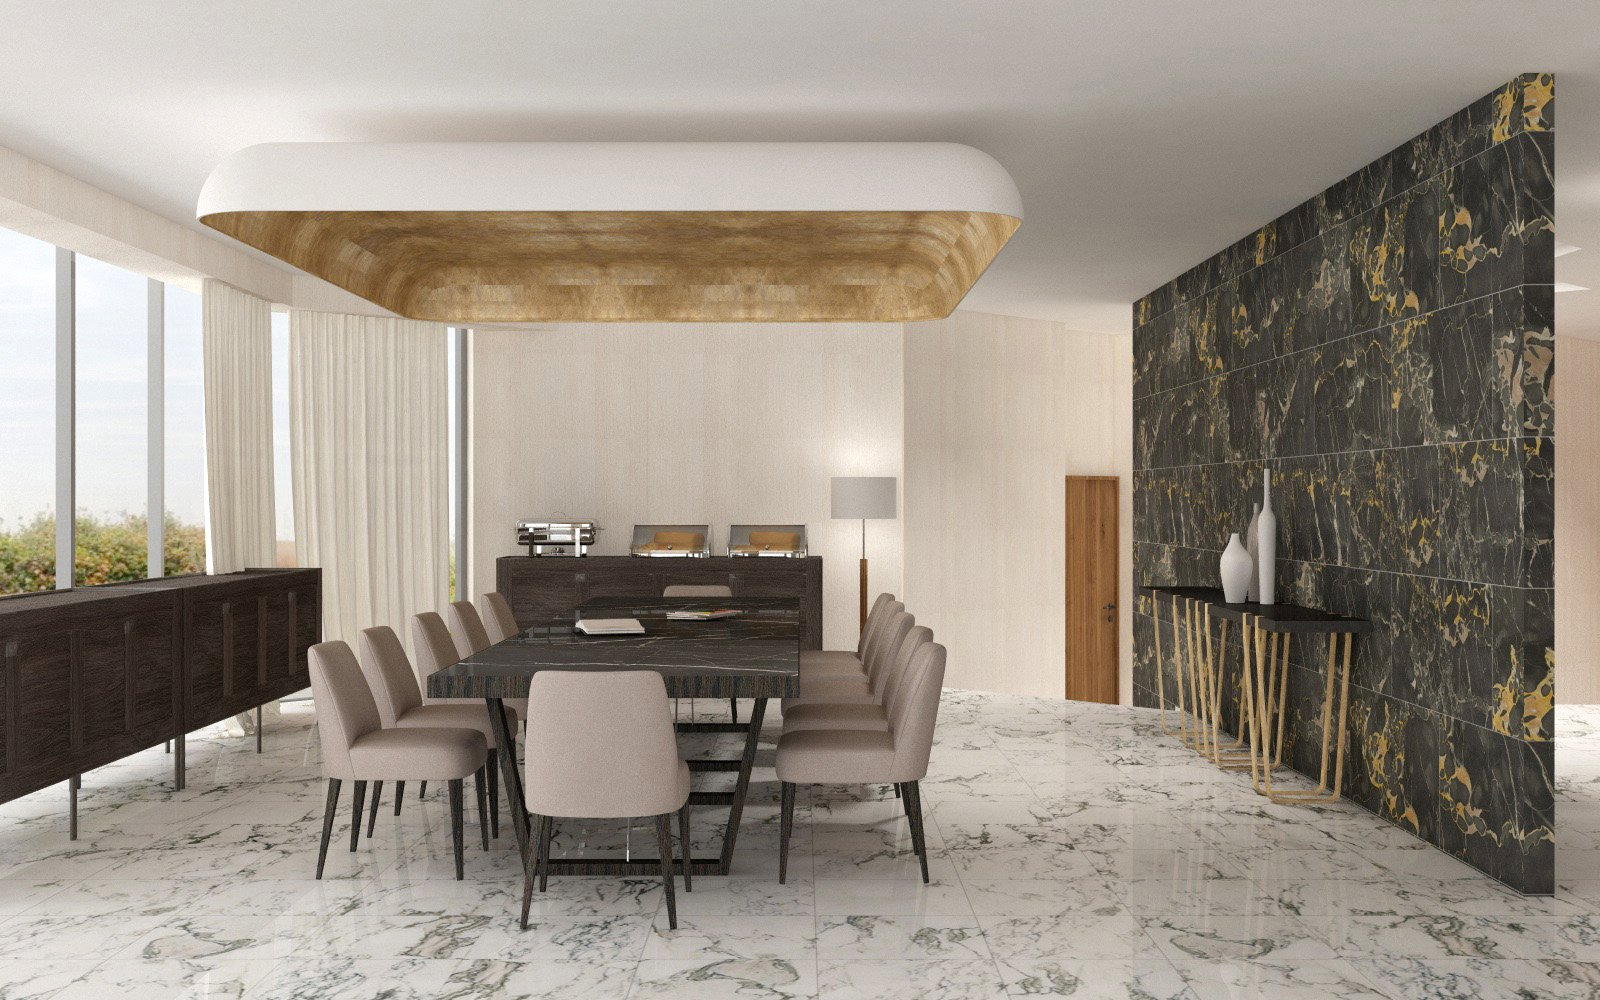 Dining room with custom furnishings and ceiling special feature duccio grassi architects}